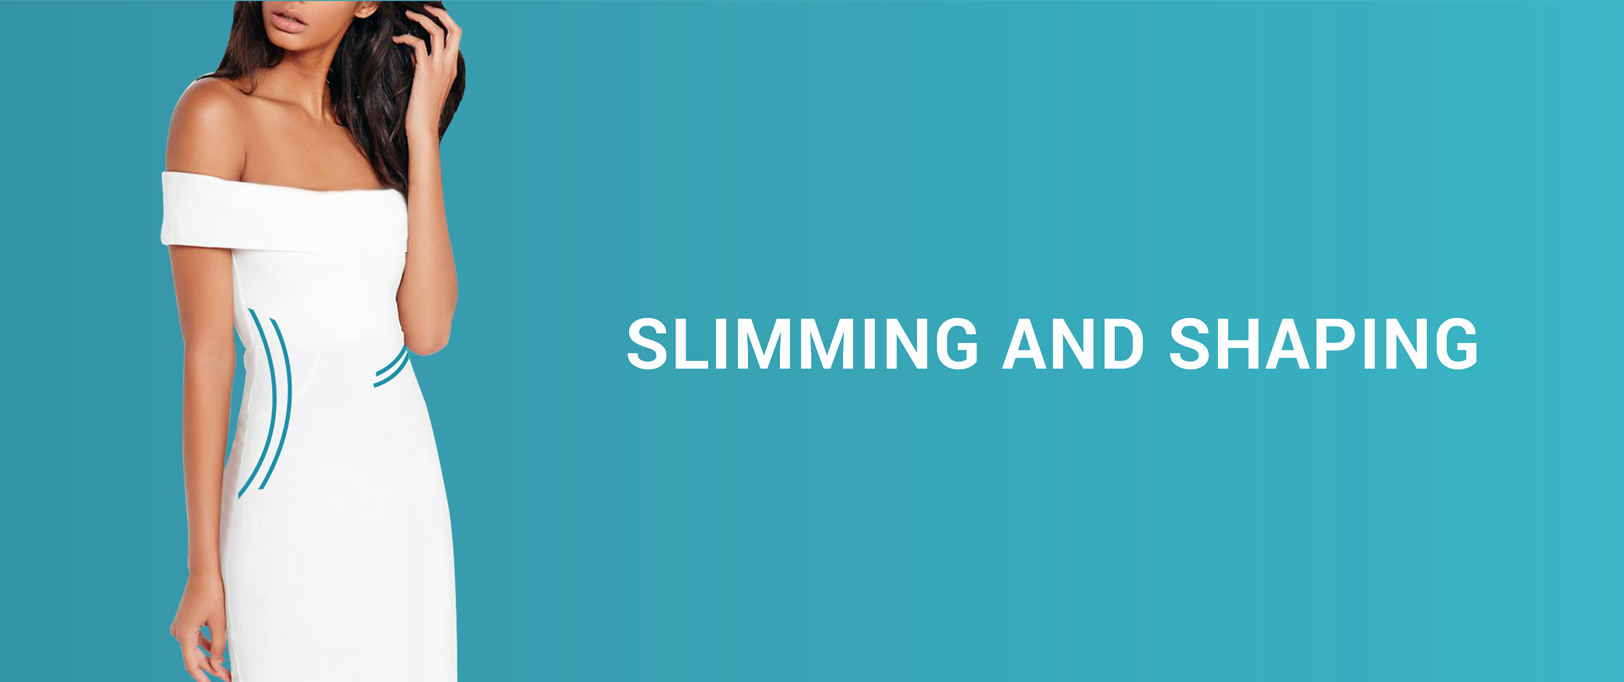 Slimming & Shaping Department